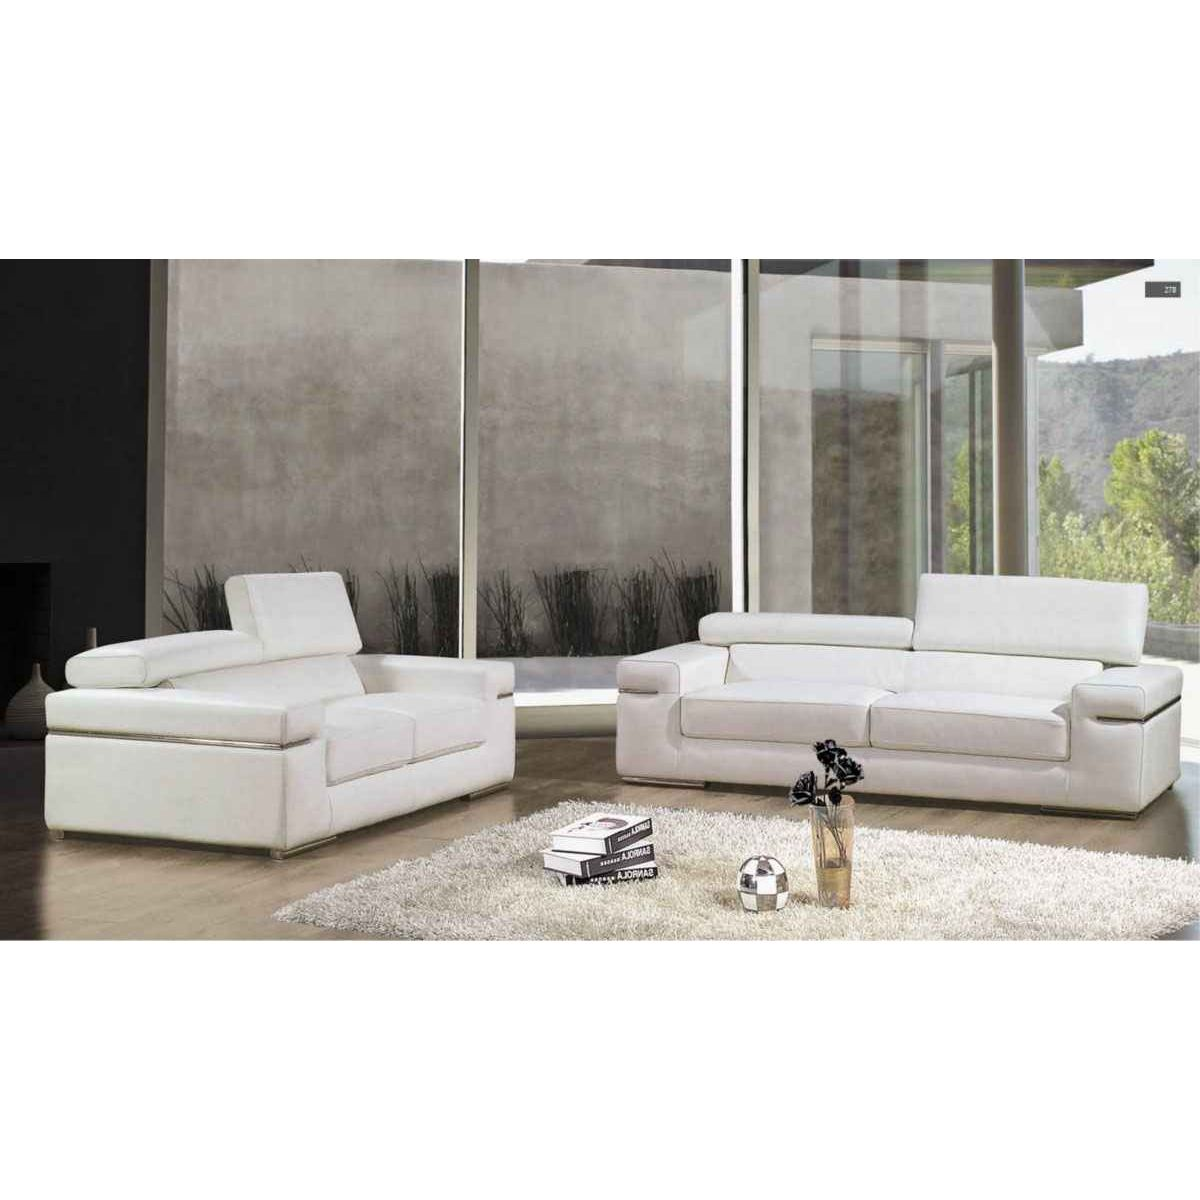 Deco in paris canape 3 places en cuir blanc thomas can - Canape cuir blanc relax ...